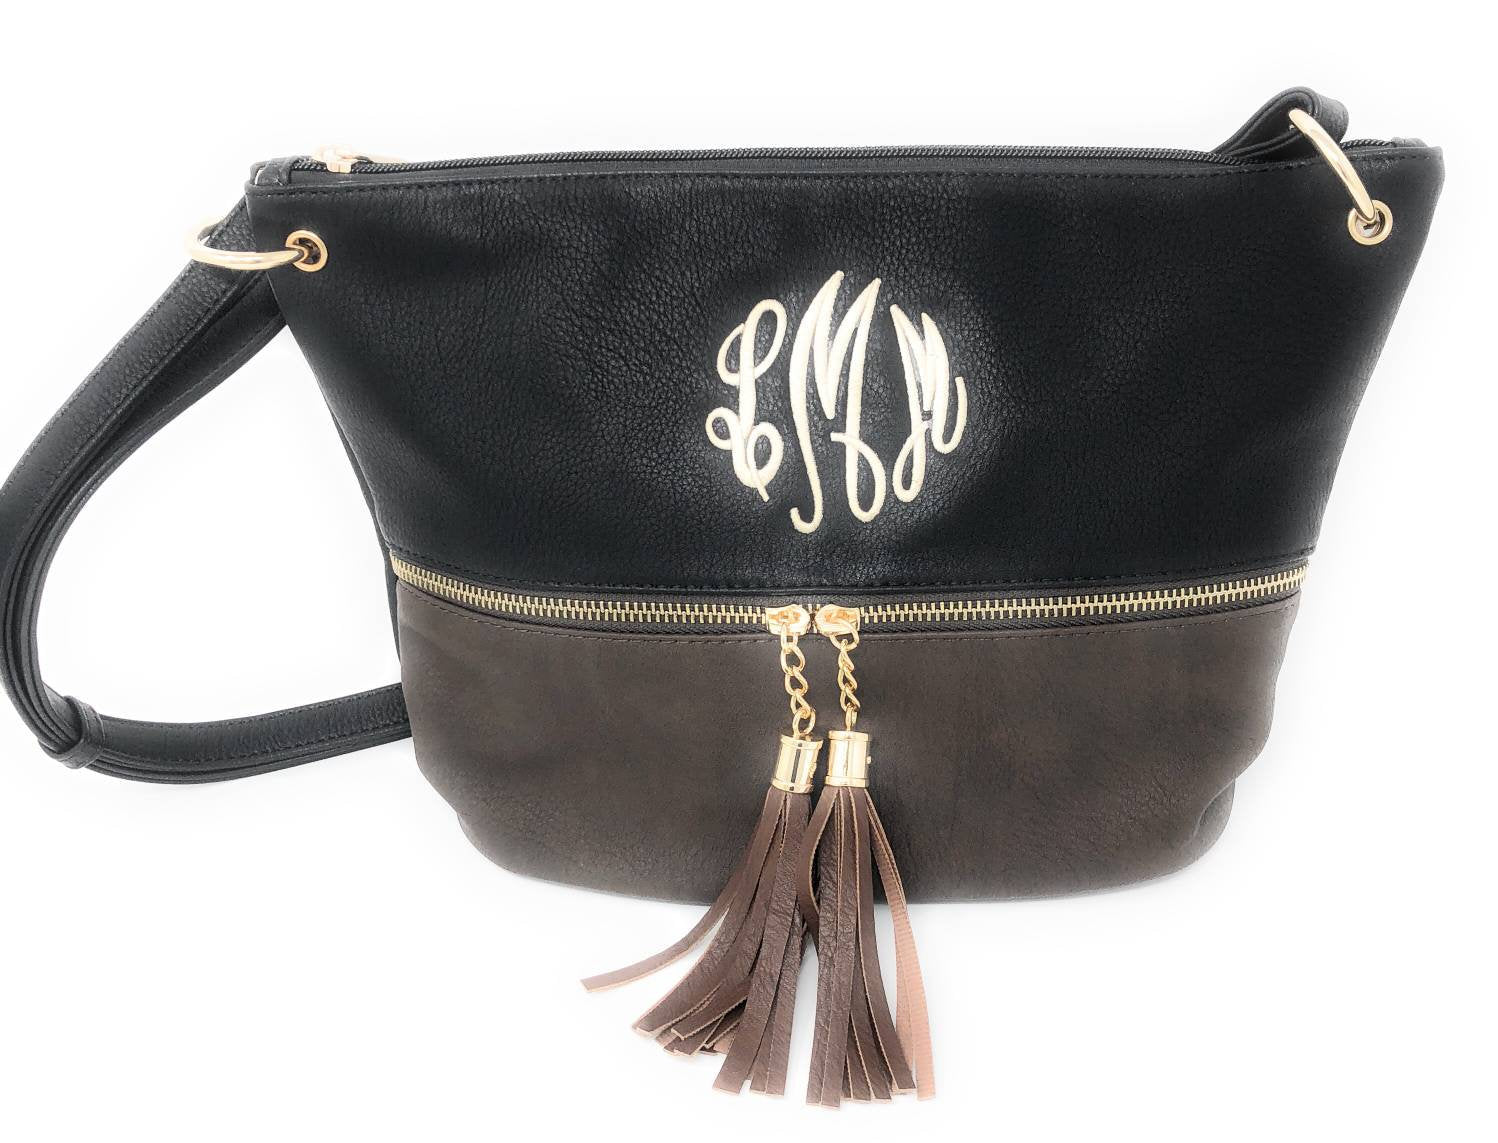 Monogrammed Crossbody Purse, Embroidered Tassle Crossbody Bag, Personalized Two Tone Cross Body Purse With Gold Zipper and Hardware, Purses